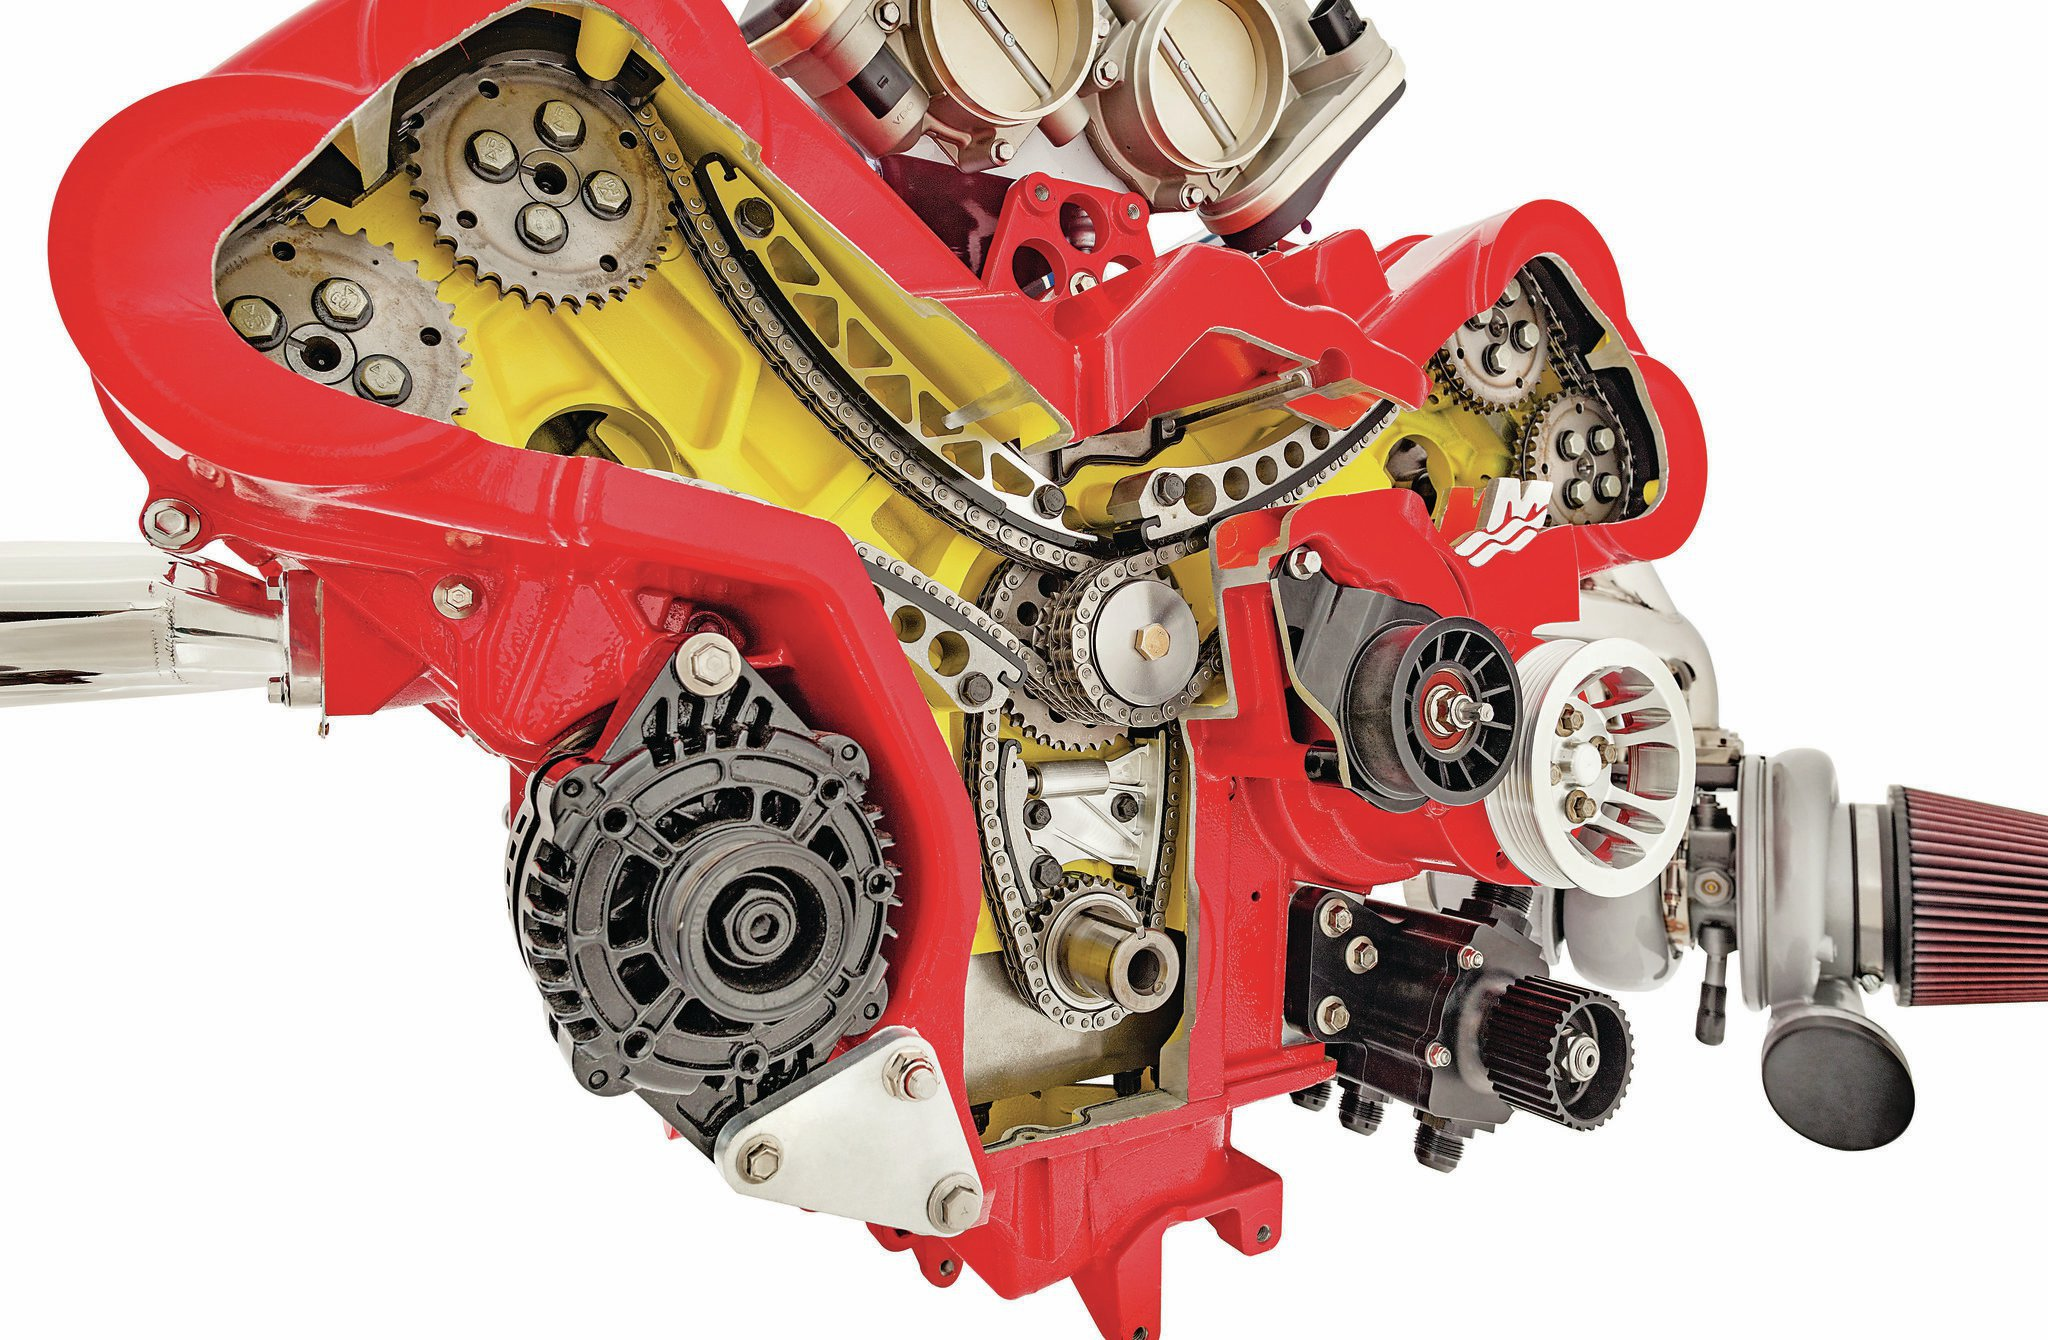 The chain-driven DOHC setups utilize two cams per cylinder head, with two intake and two exhaust valves per chamber. Rather than direct-acting cam lobes, a Formula 1–style finger-follower valvetrain design multiplies cam lobe lift to reduce cam lobe unit loading.